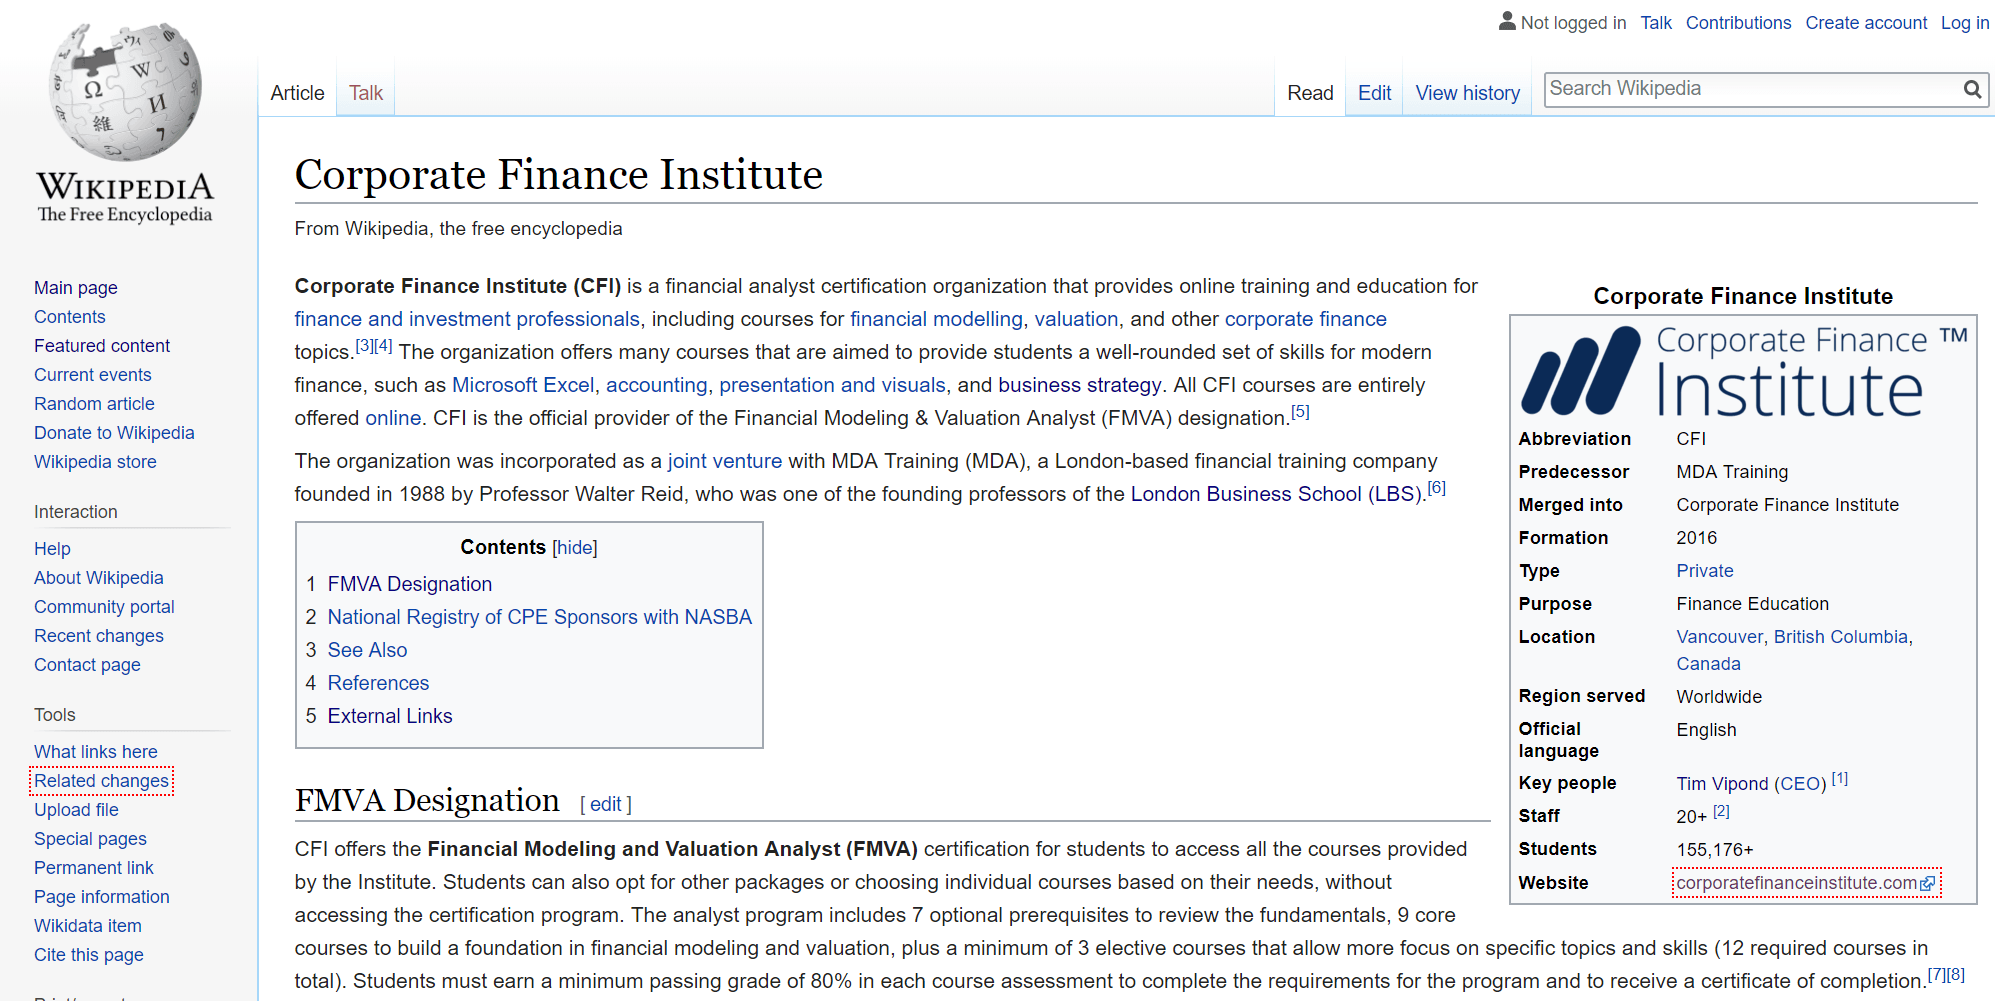 cfi corporate finance institute wikipedia